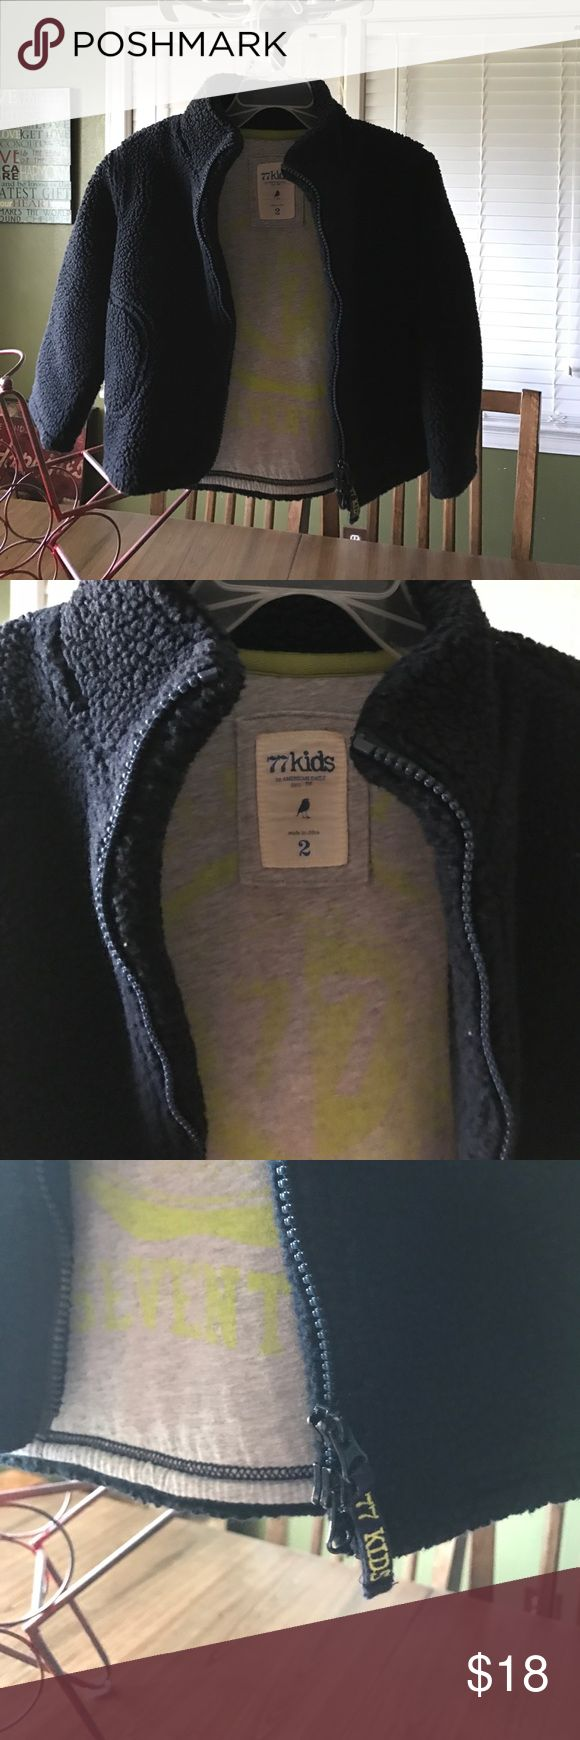 77 Kids zip-up jacket Very warm kids American Eagle jacket. Black outside and grey interior. Great condition! Bundle for a bigger discount! 77 Kids by American Eagle Jackets & Coats